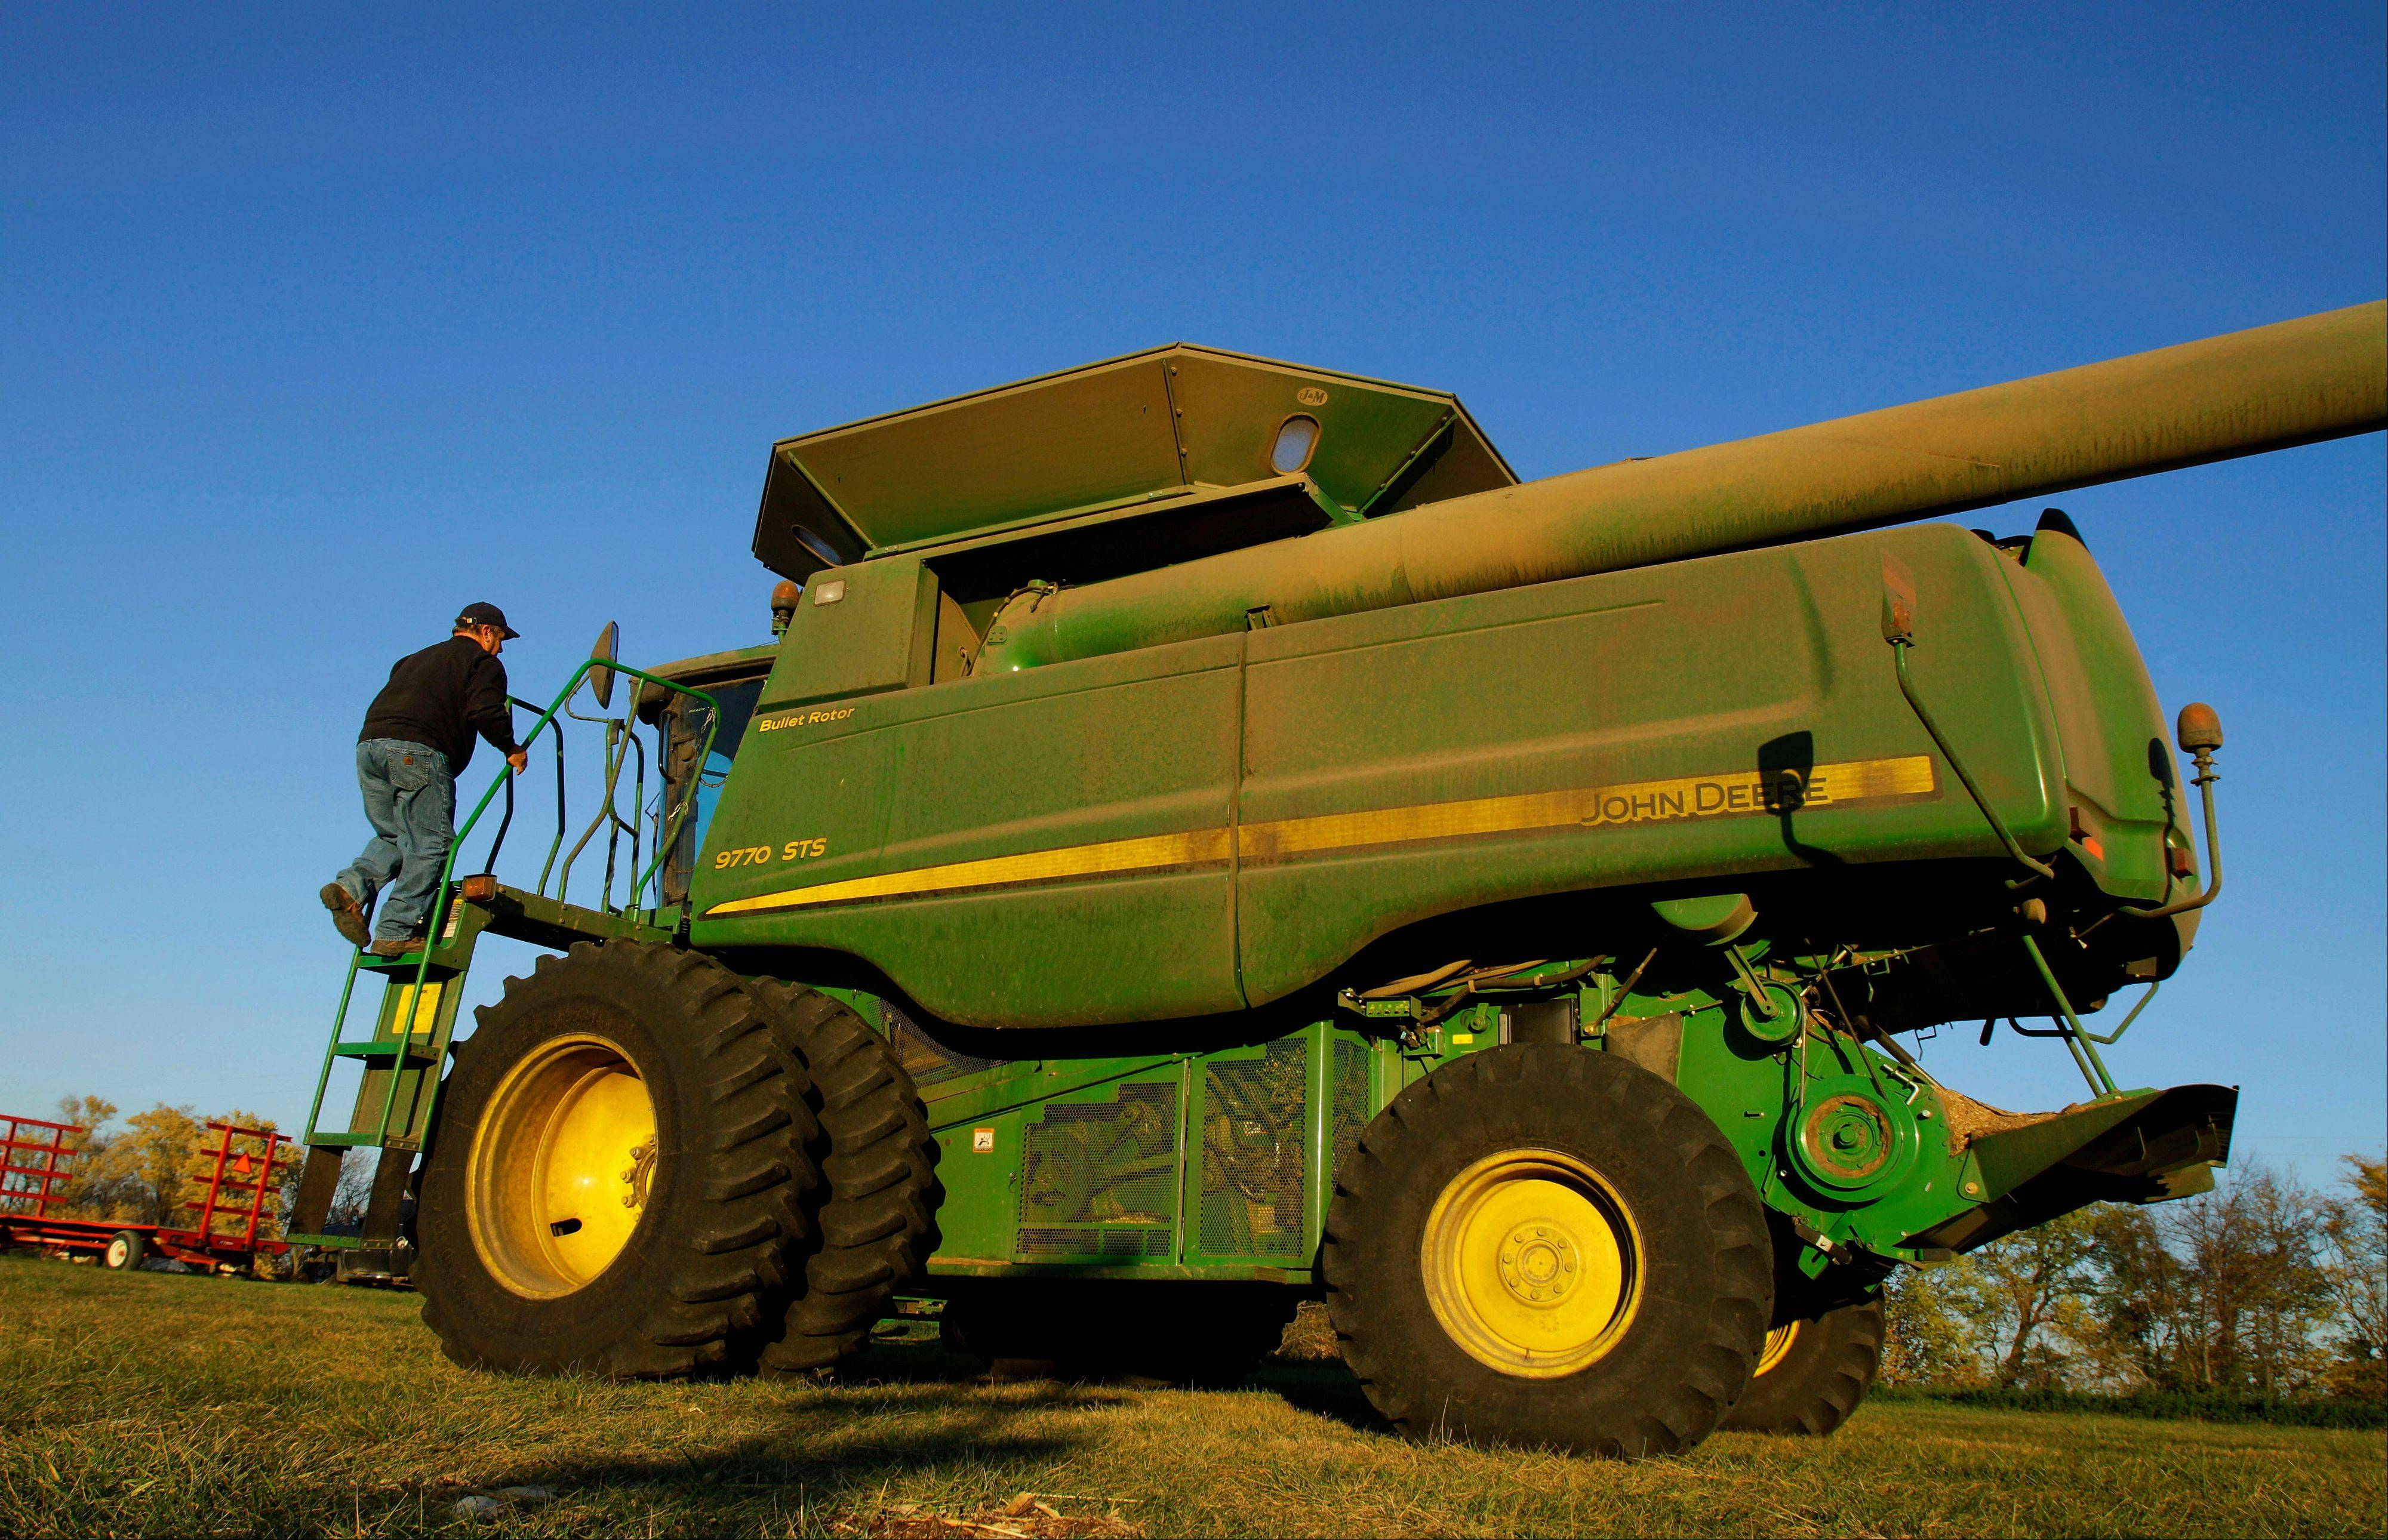 Bad economy? Farmers have one of best years ever